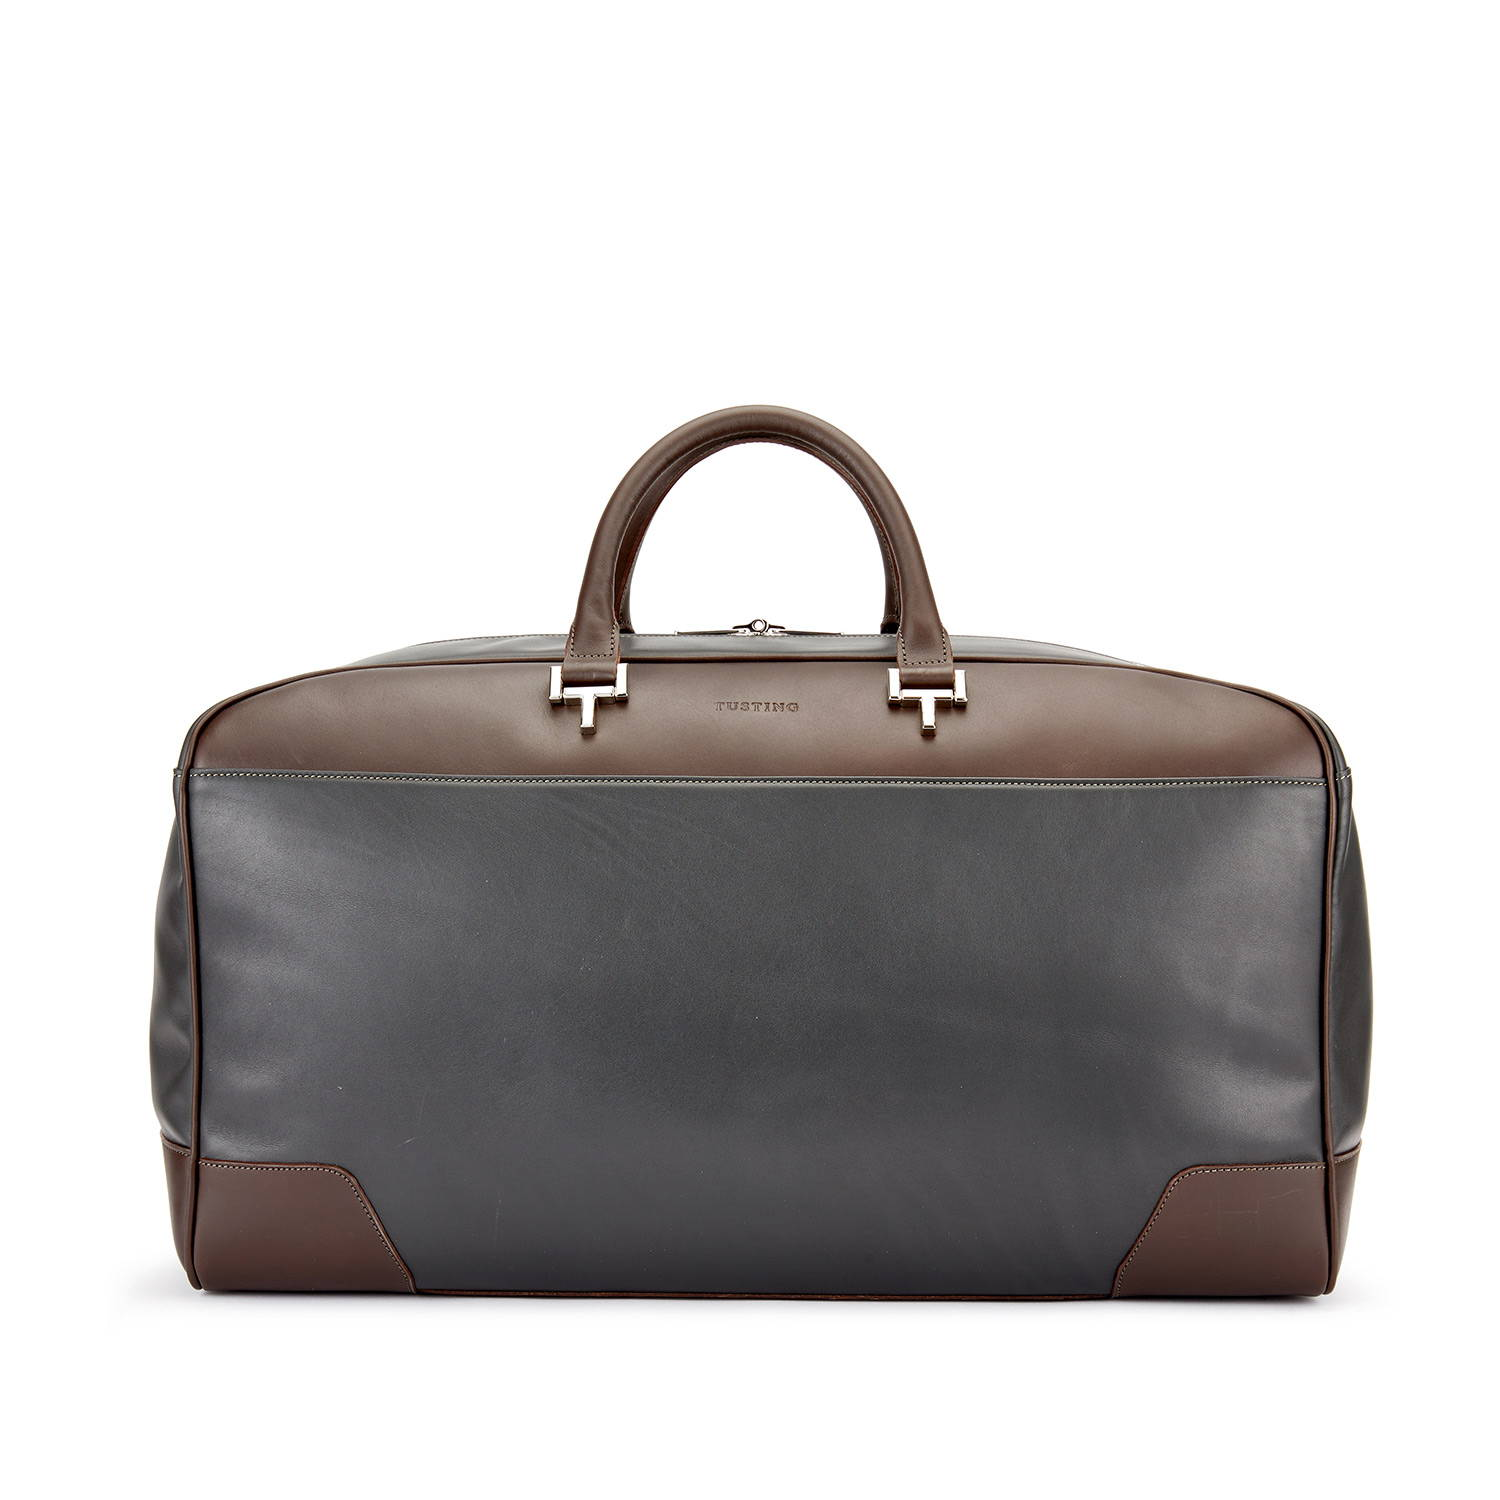 Tusting Hingham Leather Duffle Bag in Pewter and Chocolate